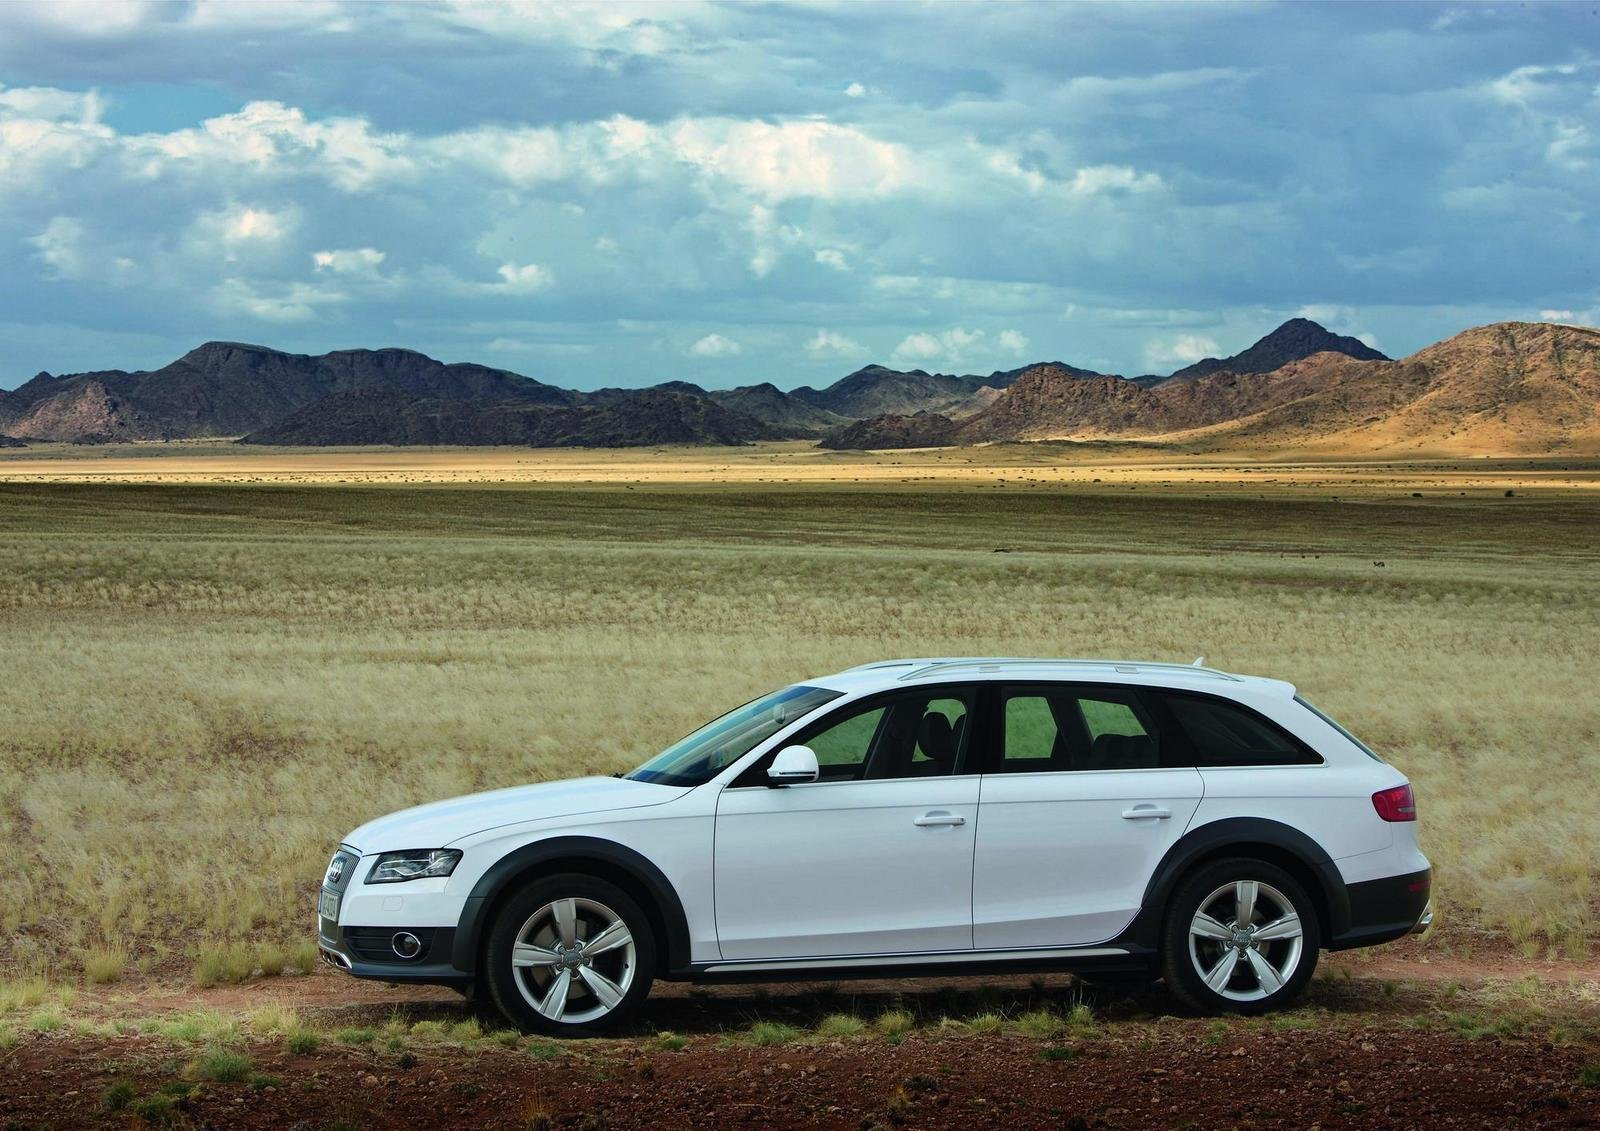 2009 audi a4 allroad quattro picture 291556 car review. Black Bedroom Furniture Sets. Home Design Ideas